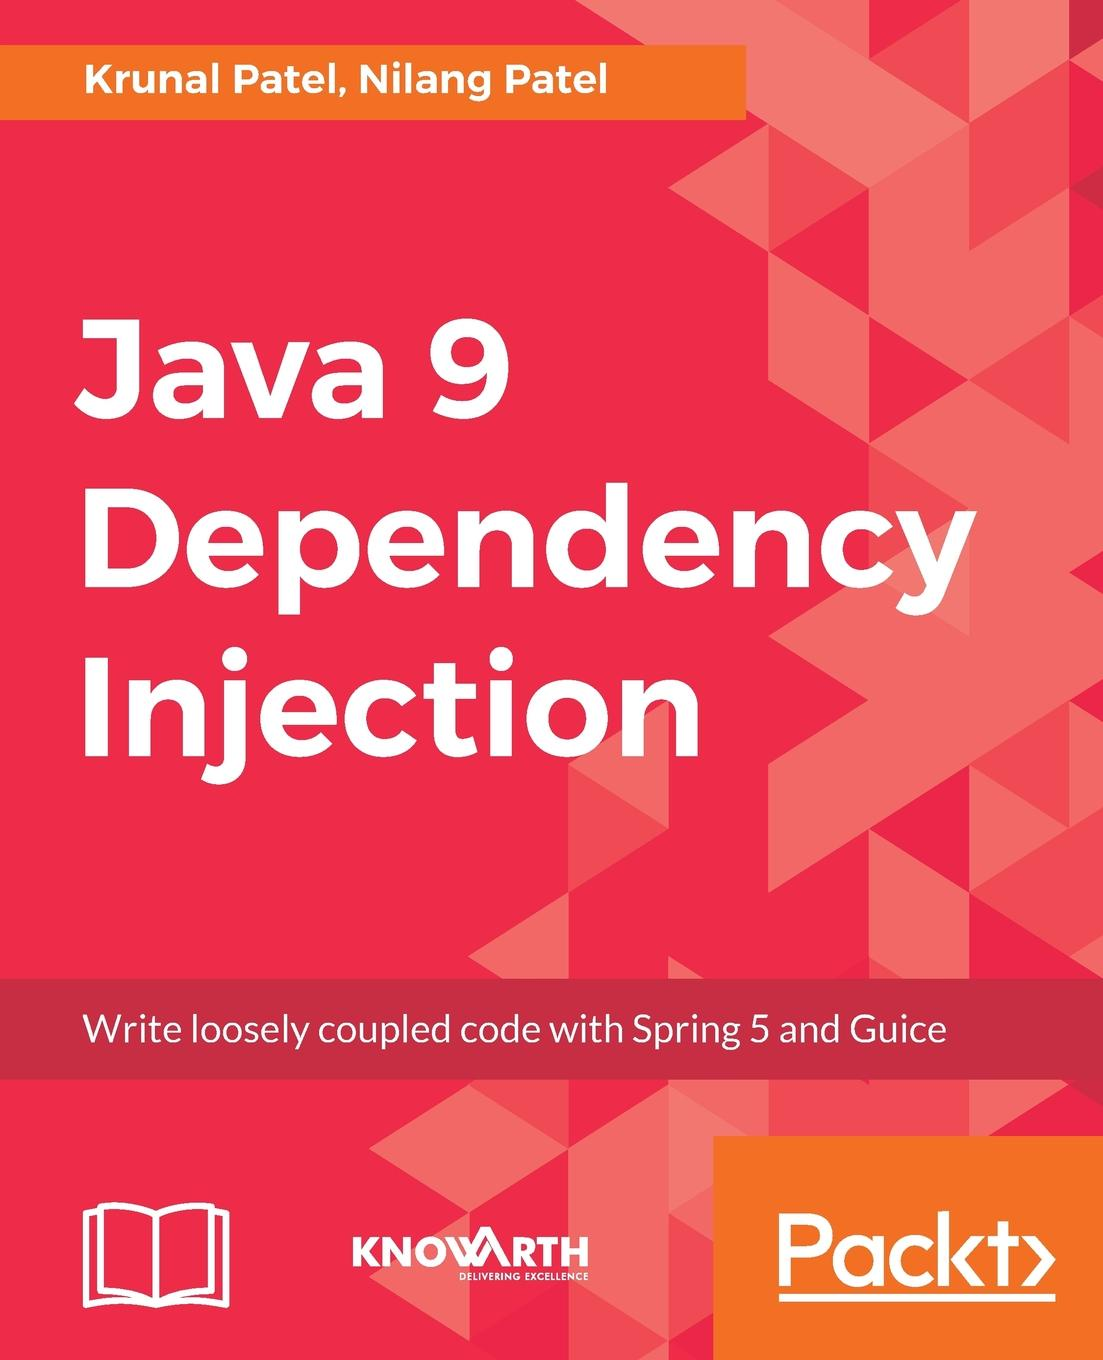 купить Nilang Patel, Krunal Patel Java 9 Dependency Injection по цене 6189 рублей